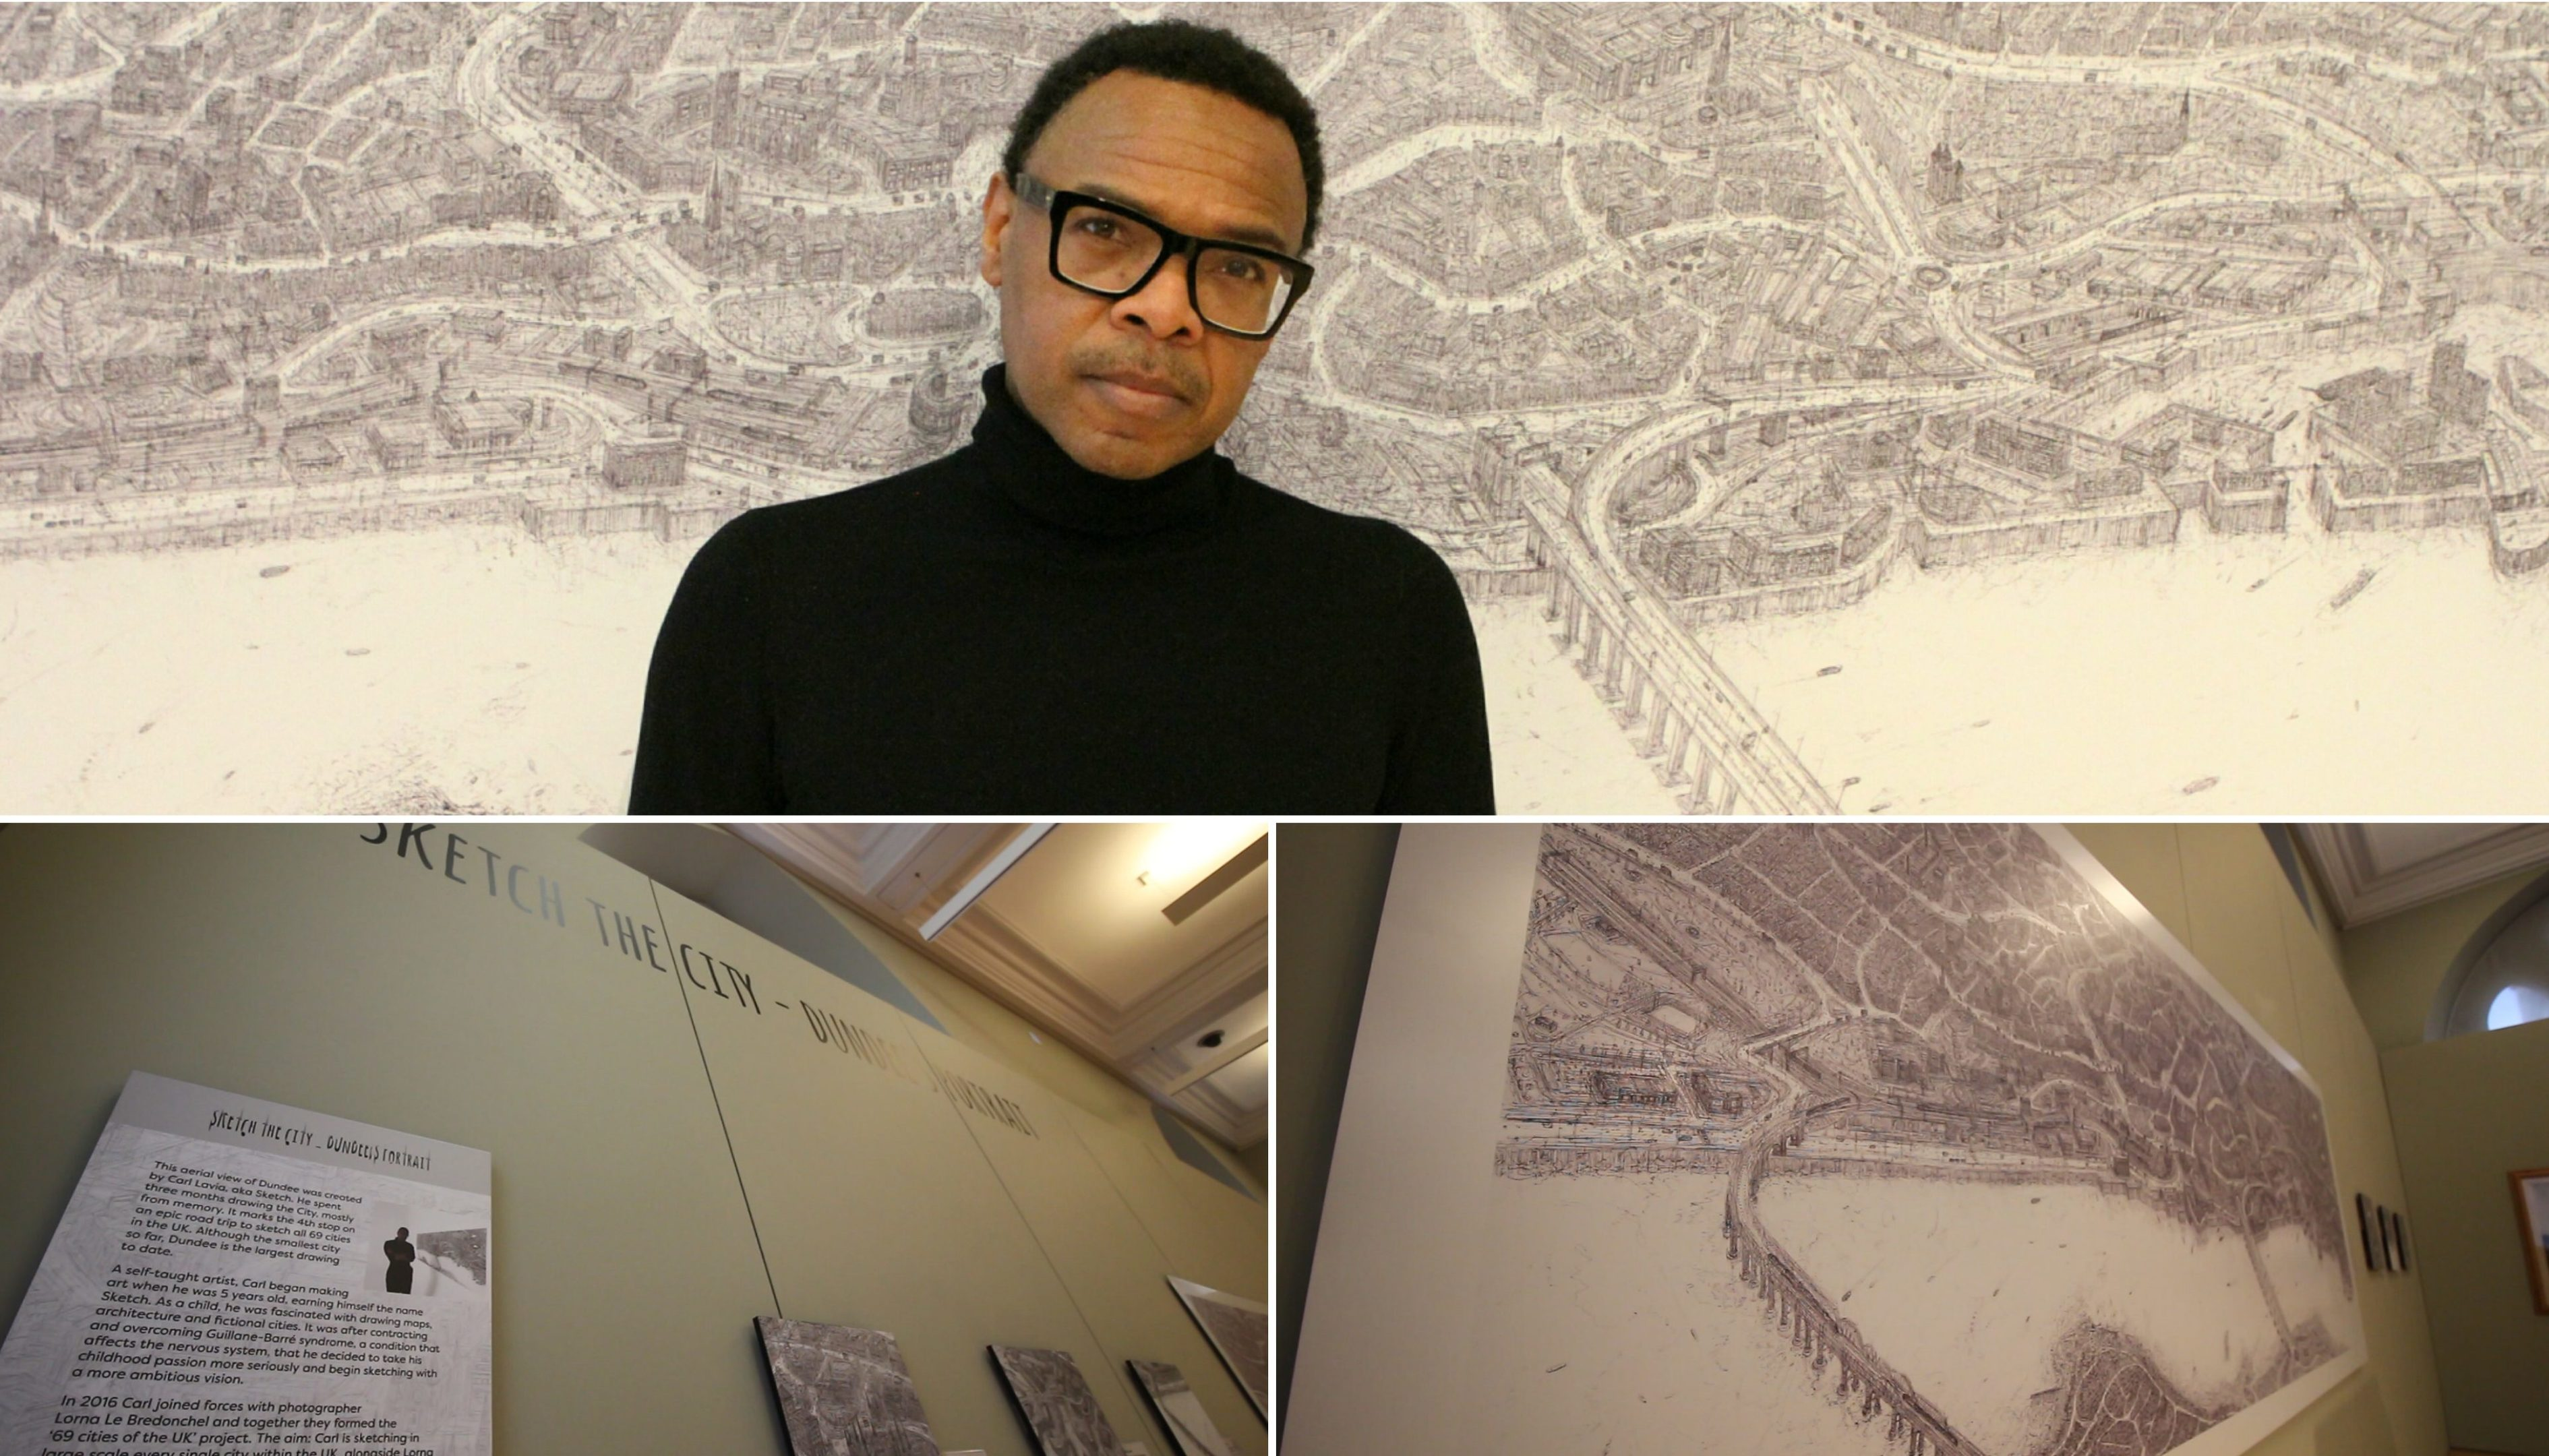 Carl Lavia's sketch of Dundee was revealed this morning